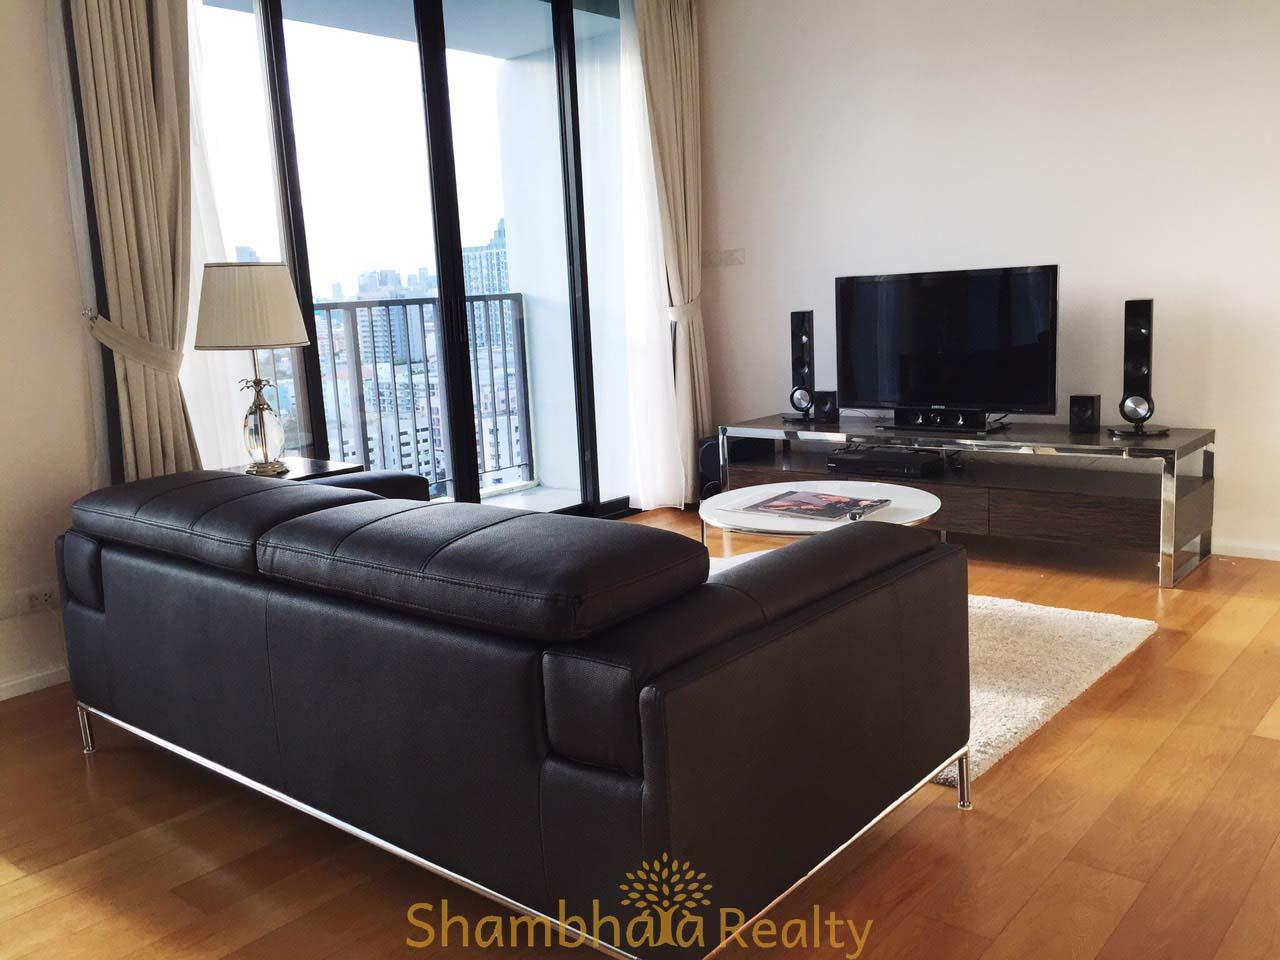 Shambhala Realty Agency's The Alcove Thonglor 10 Condominium for Sale/Rent in Sukhumvit 55 ( Thonglor 10 ) 12